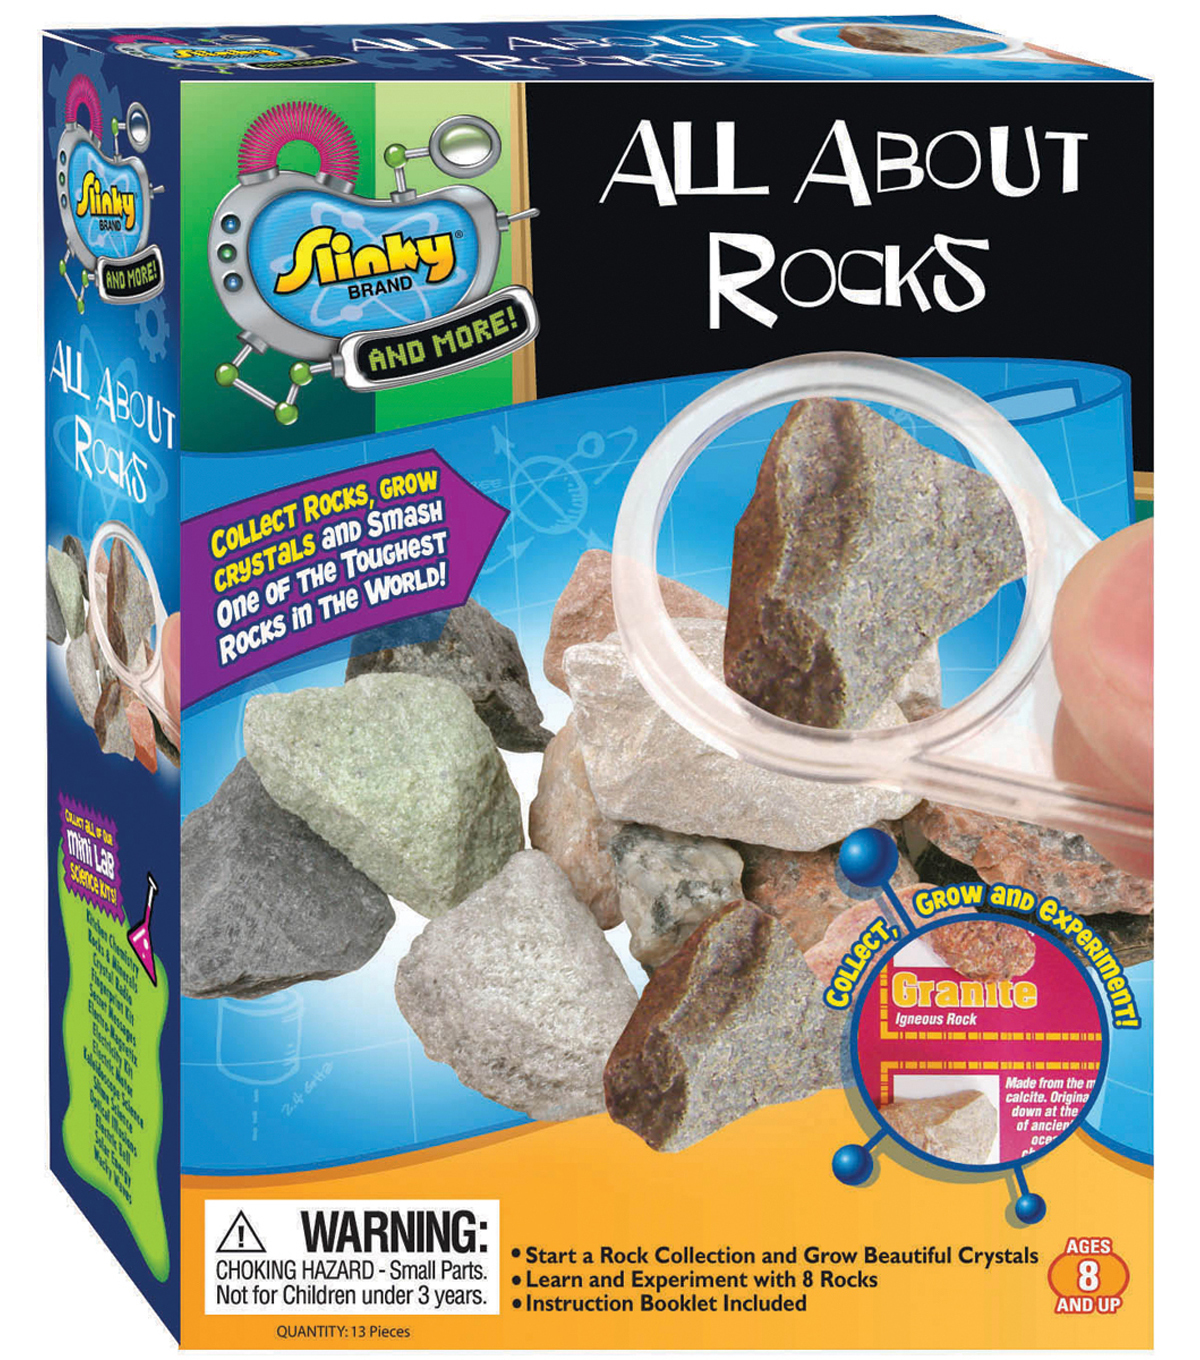 All About Rocks Kit